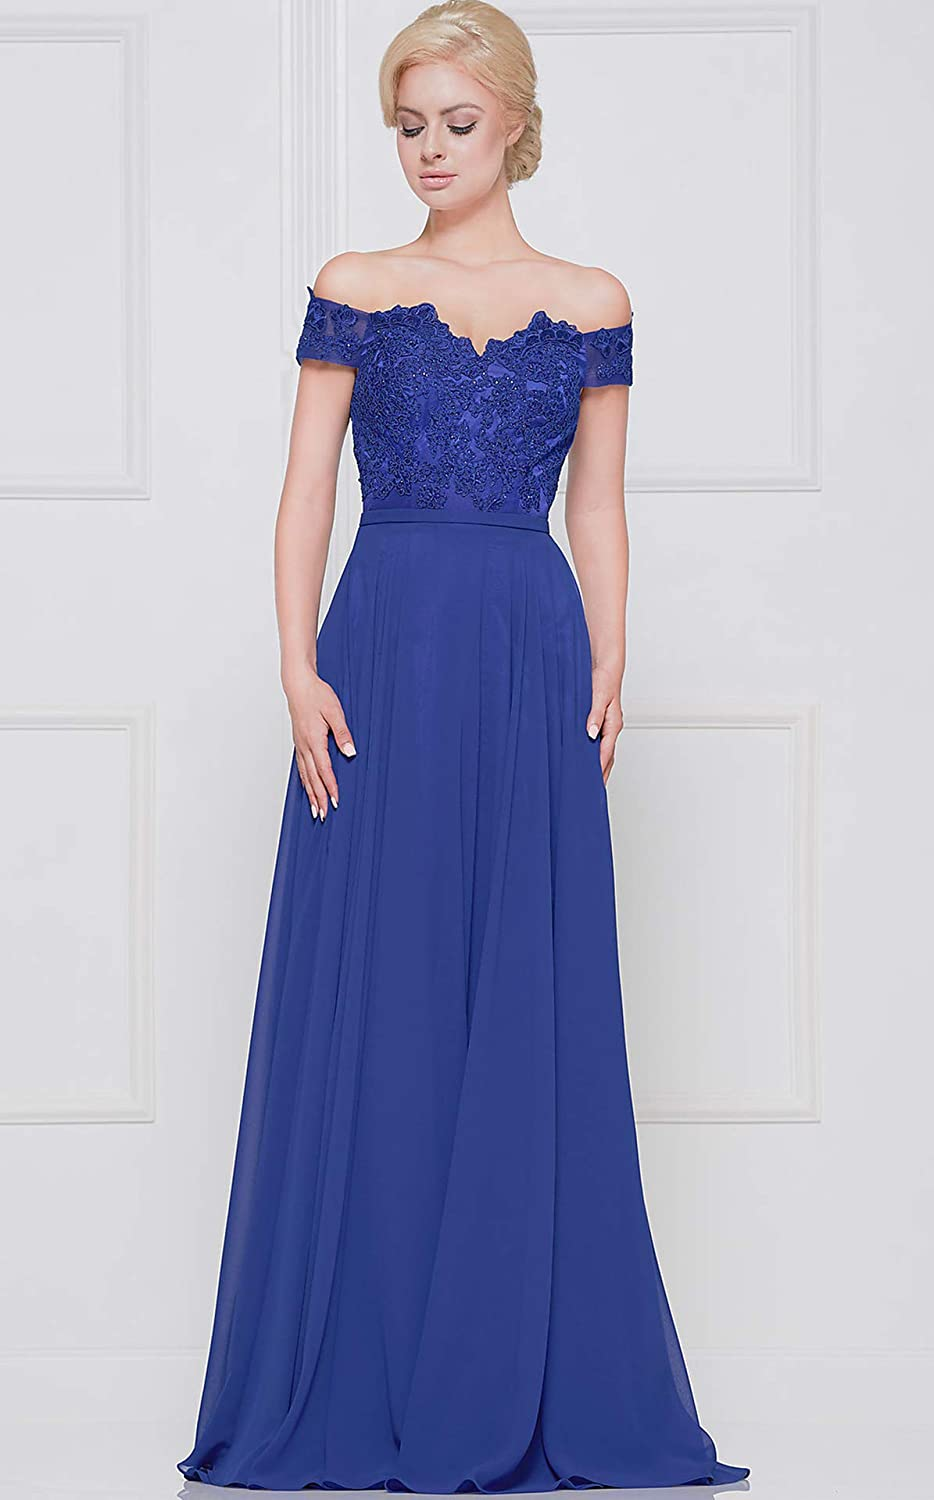 Womens Off The Shoulder Lace Bodice Prom Dress Appliqued Formal Evening Gown